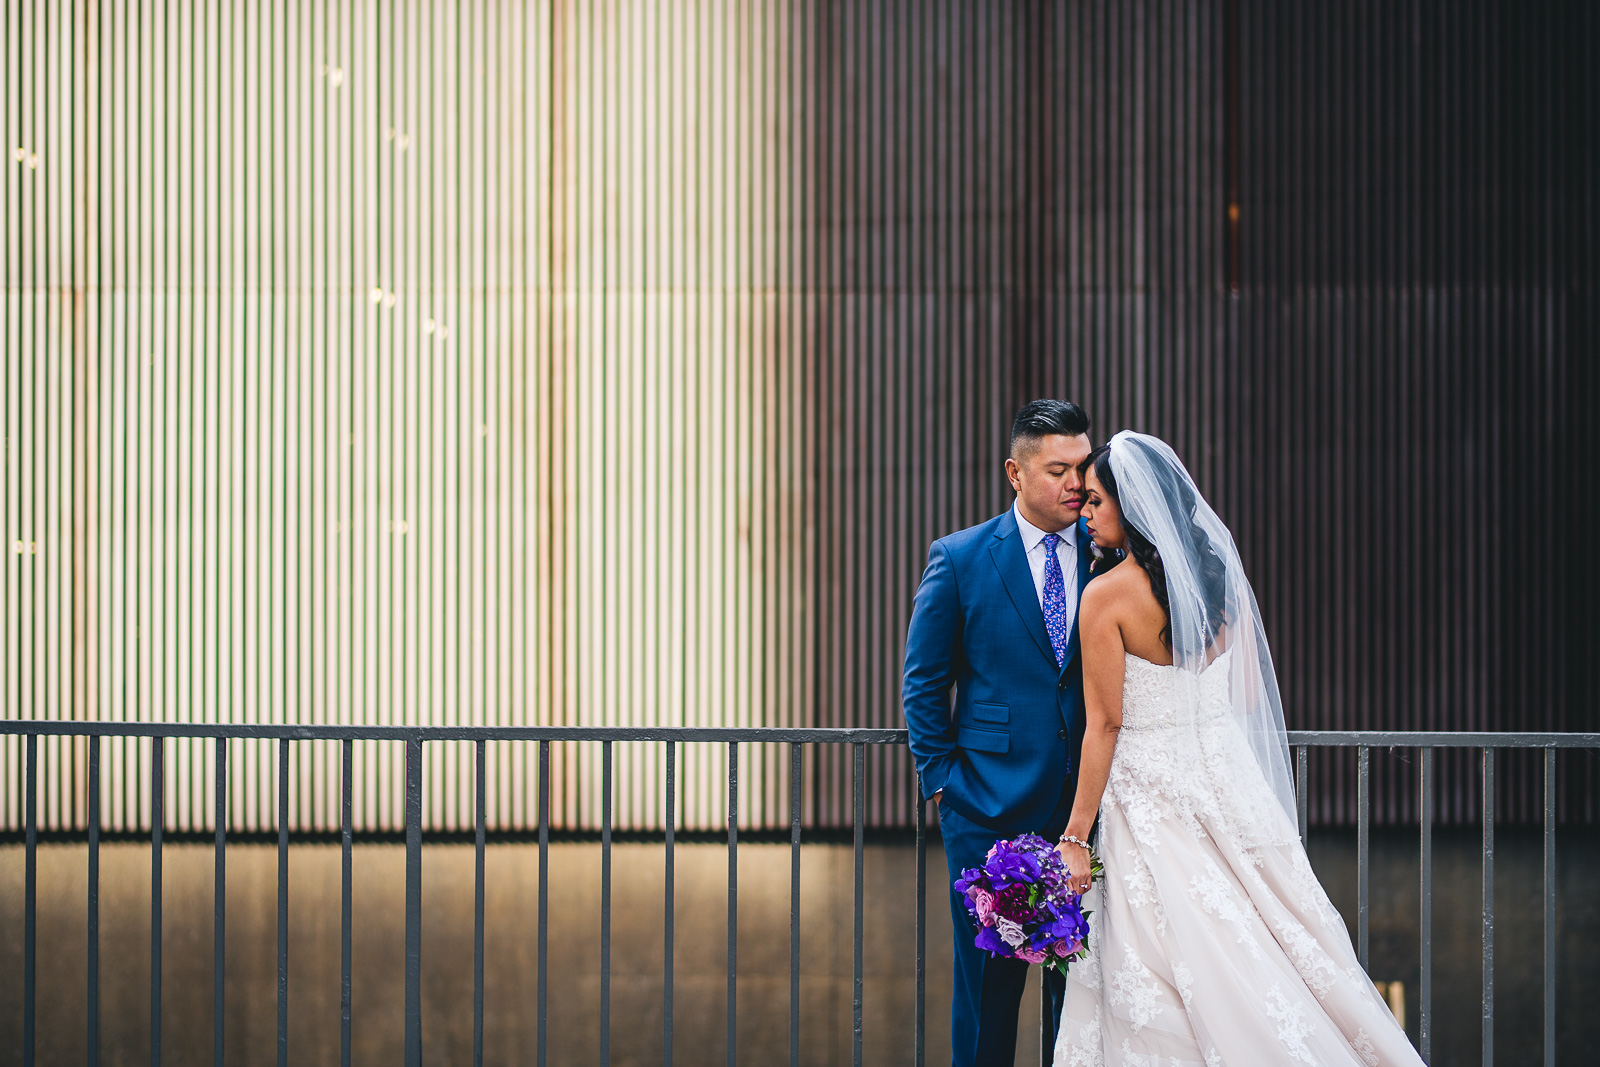 117 chicago wedding photographer best portraits during weddings review - 2018 in Review // My Favorite Chicago Wedding Photography Portraits